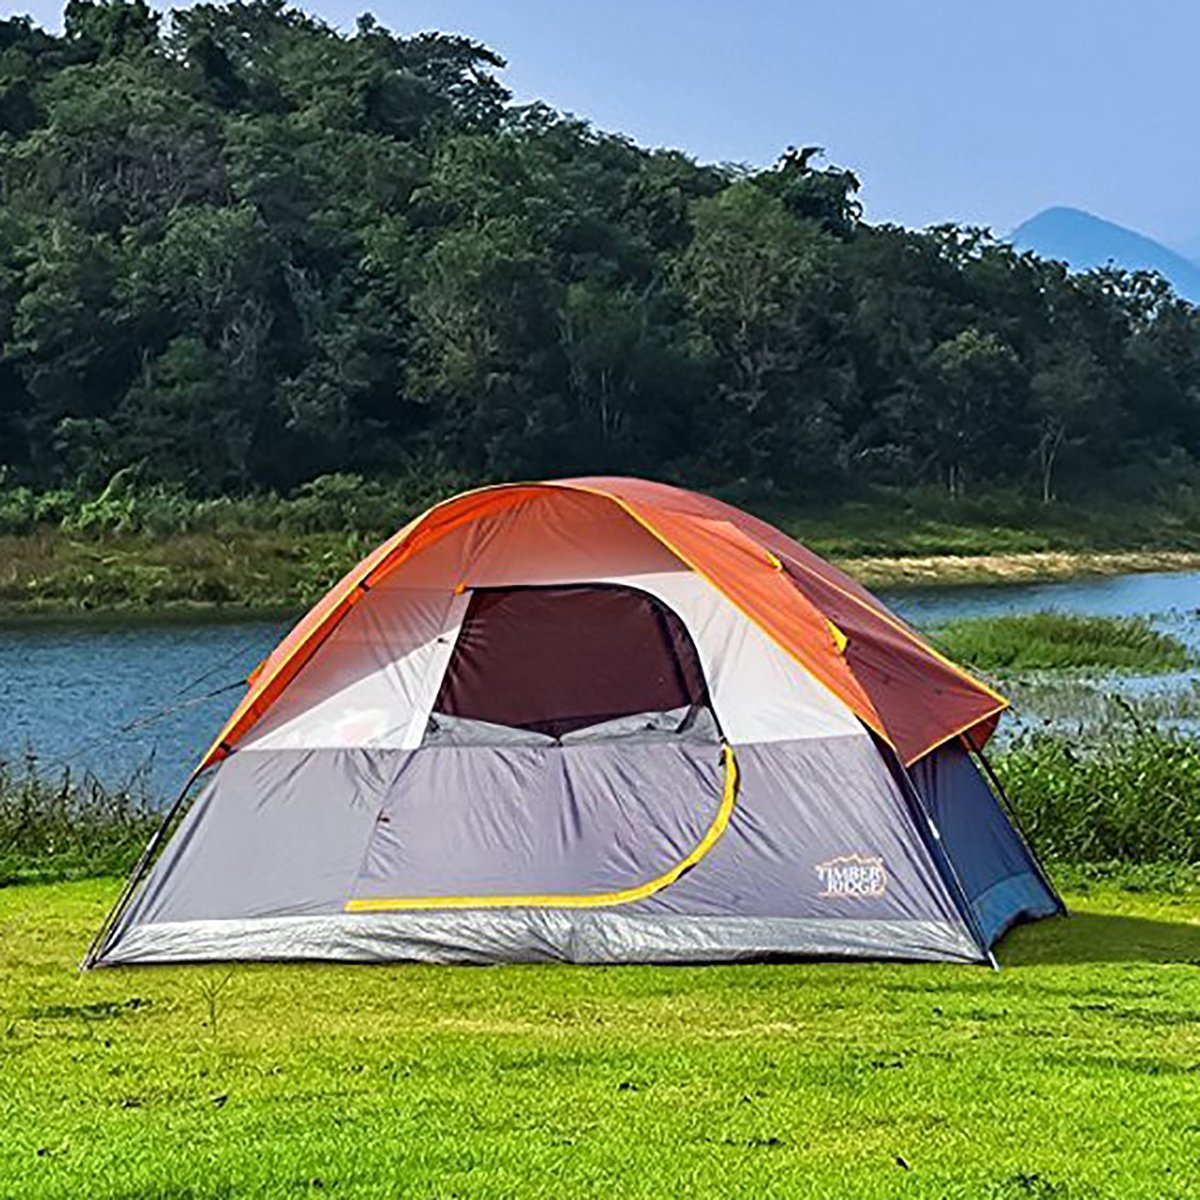 Timber Ridge 6 Person Dome D Door Tent Camping Traveling Family Tent Portable Rain Fly with Carry Bag